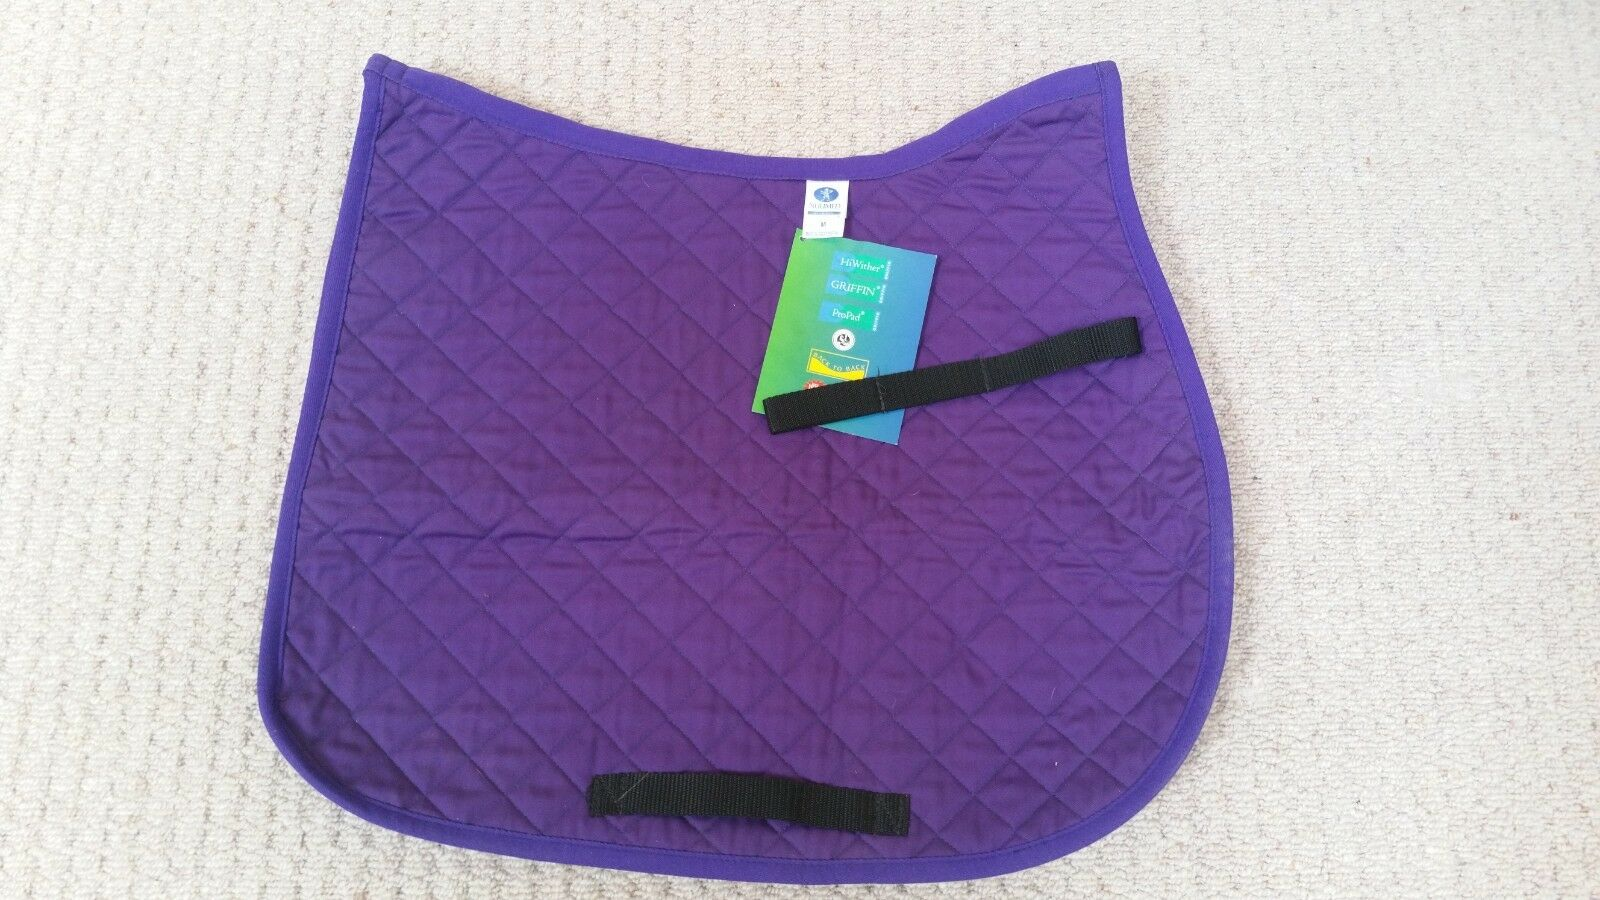 Griffin Nuumed SP11-GP - Everyday Hi-Wither Purple Medium 5 oz Quilt Saddle Pad